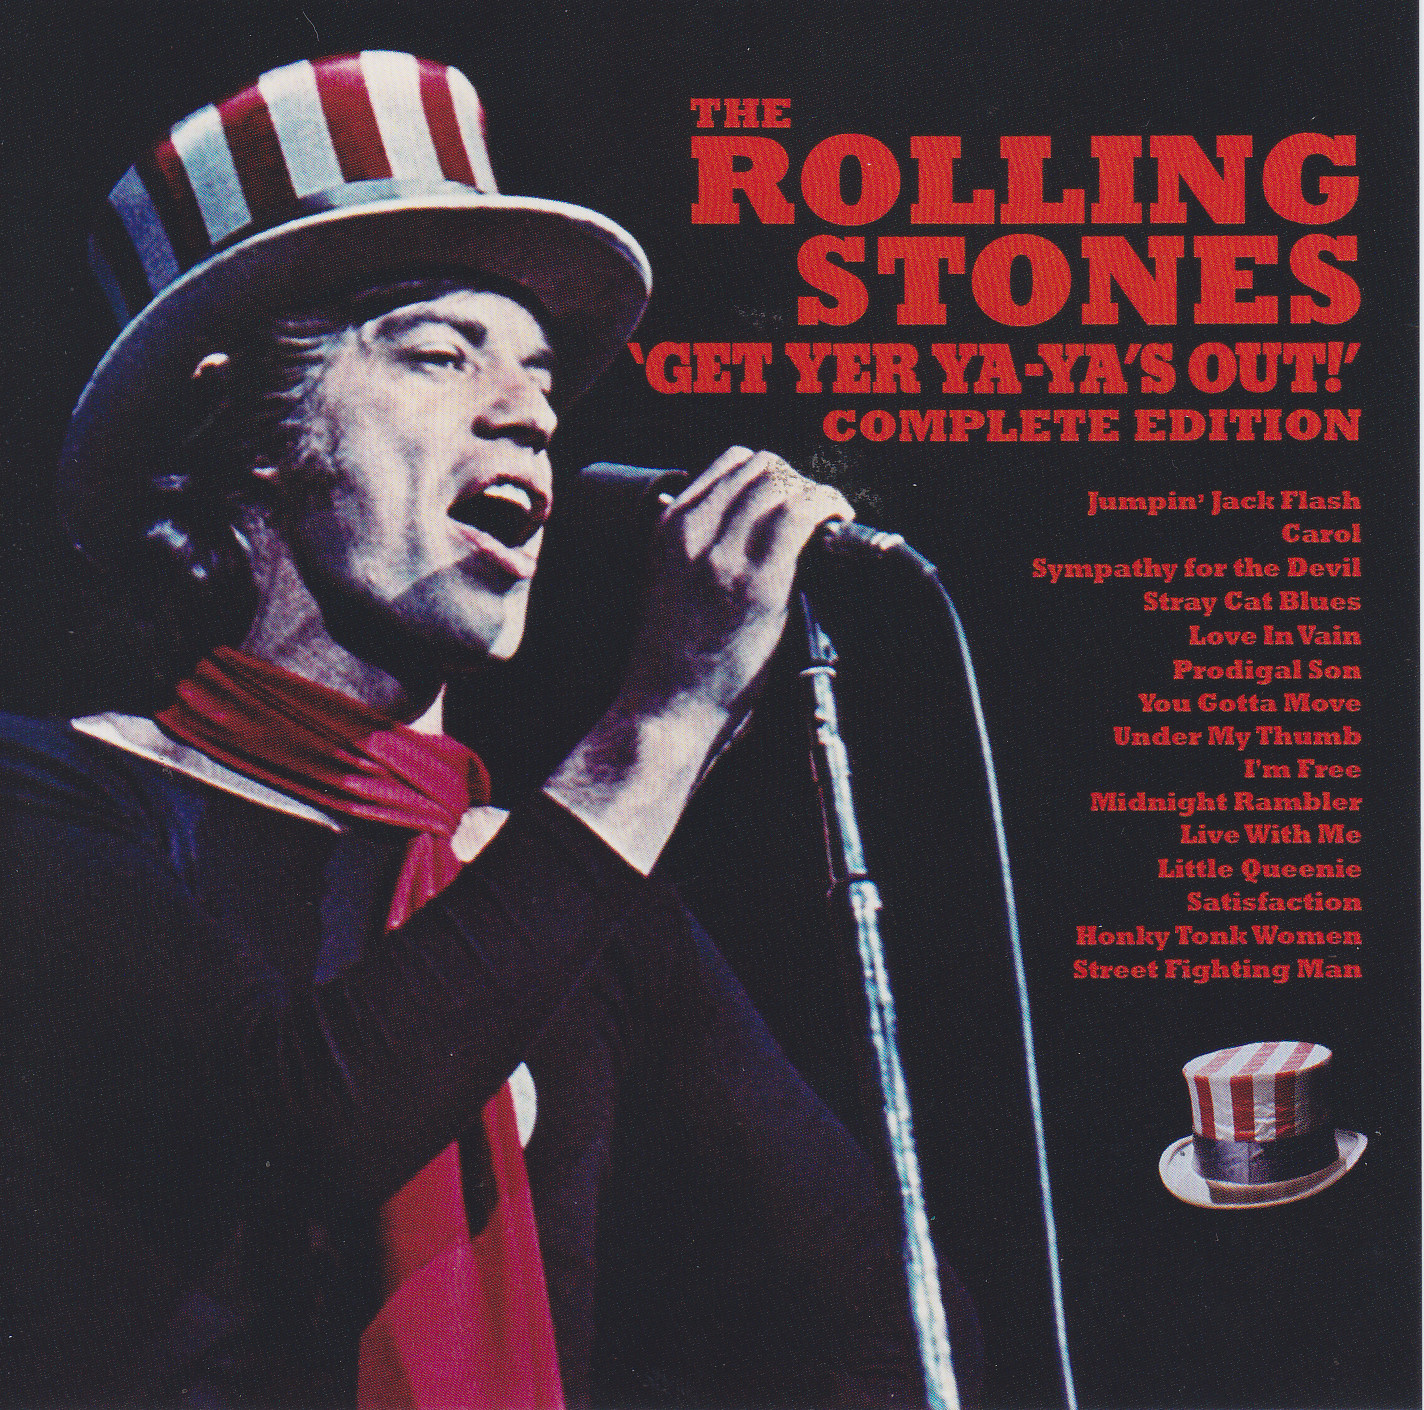 Rolling Stones, The - Get Yer Ya Yas Out Complete Edition 2nd Press ( 1CD )  Non Label